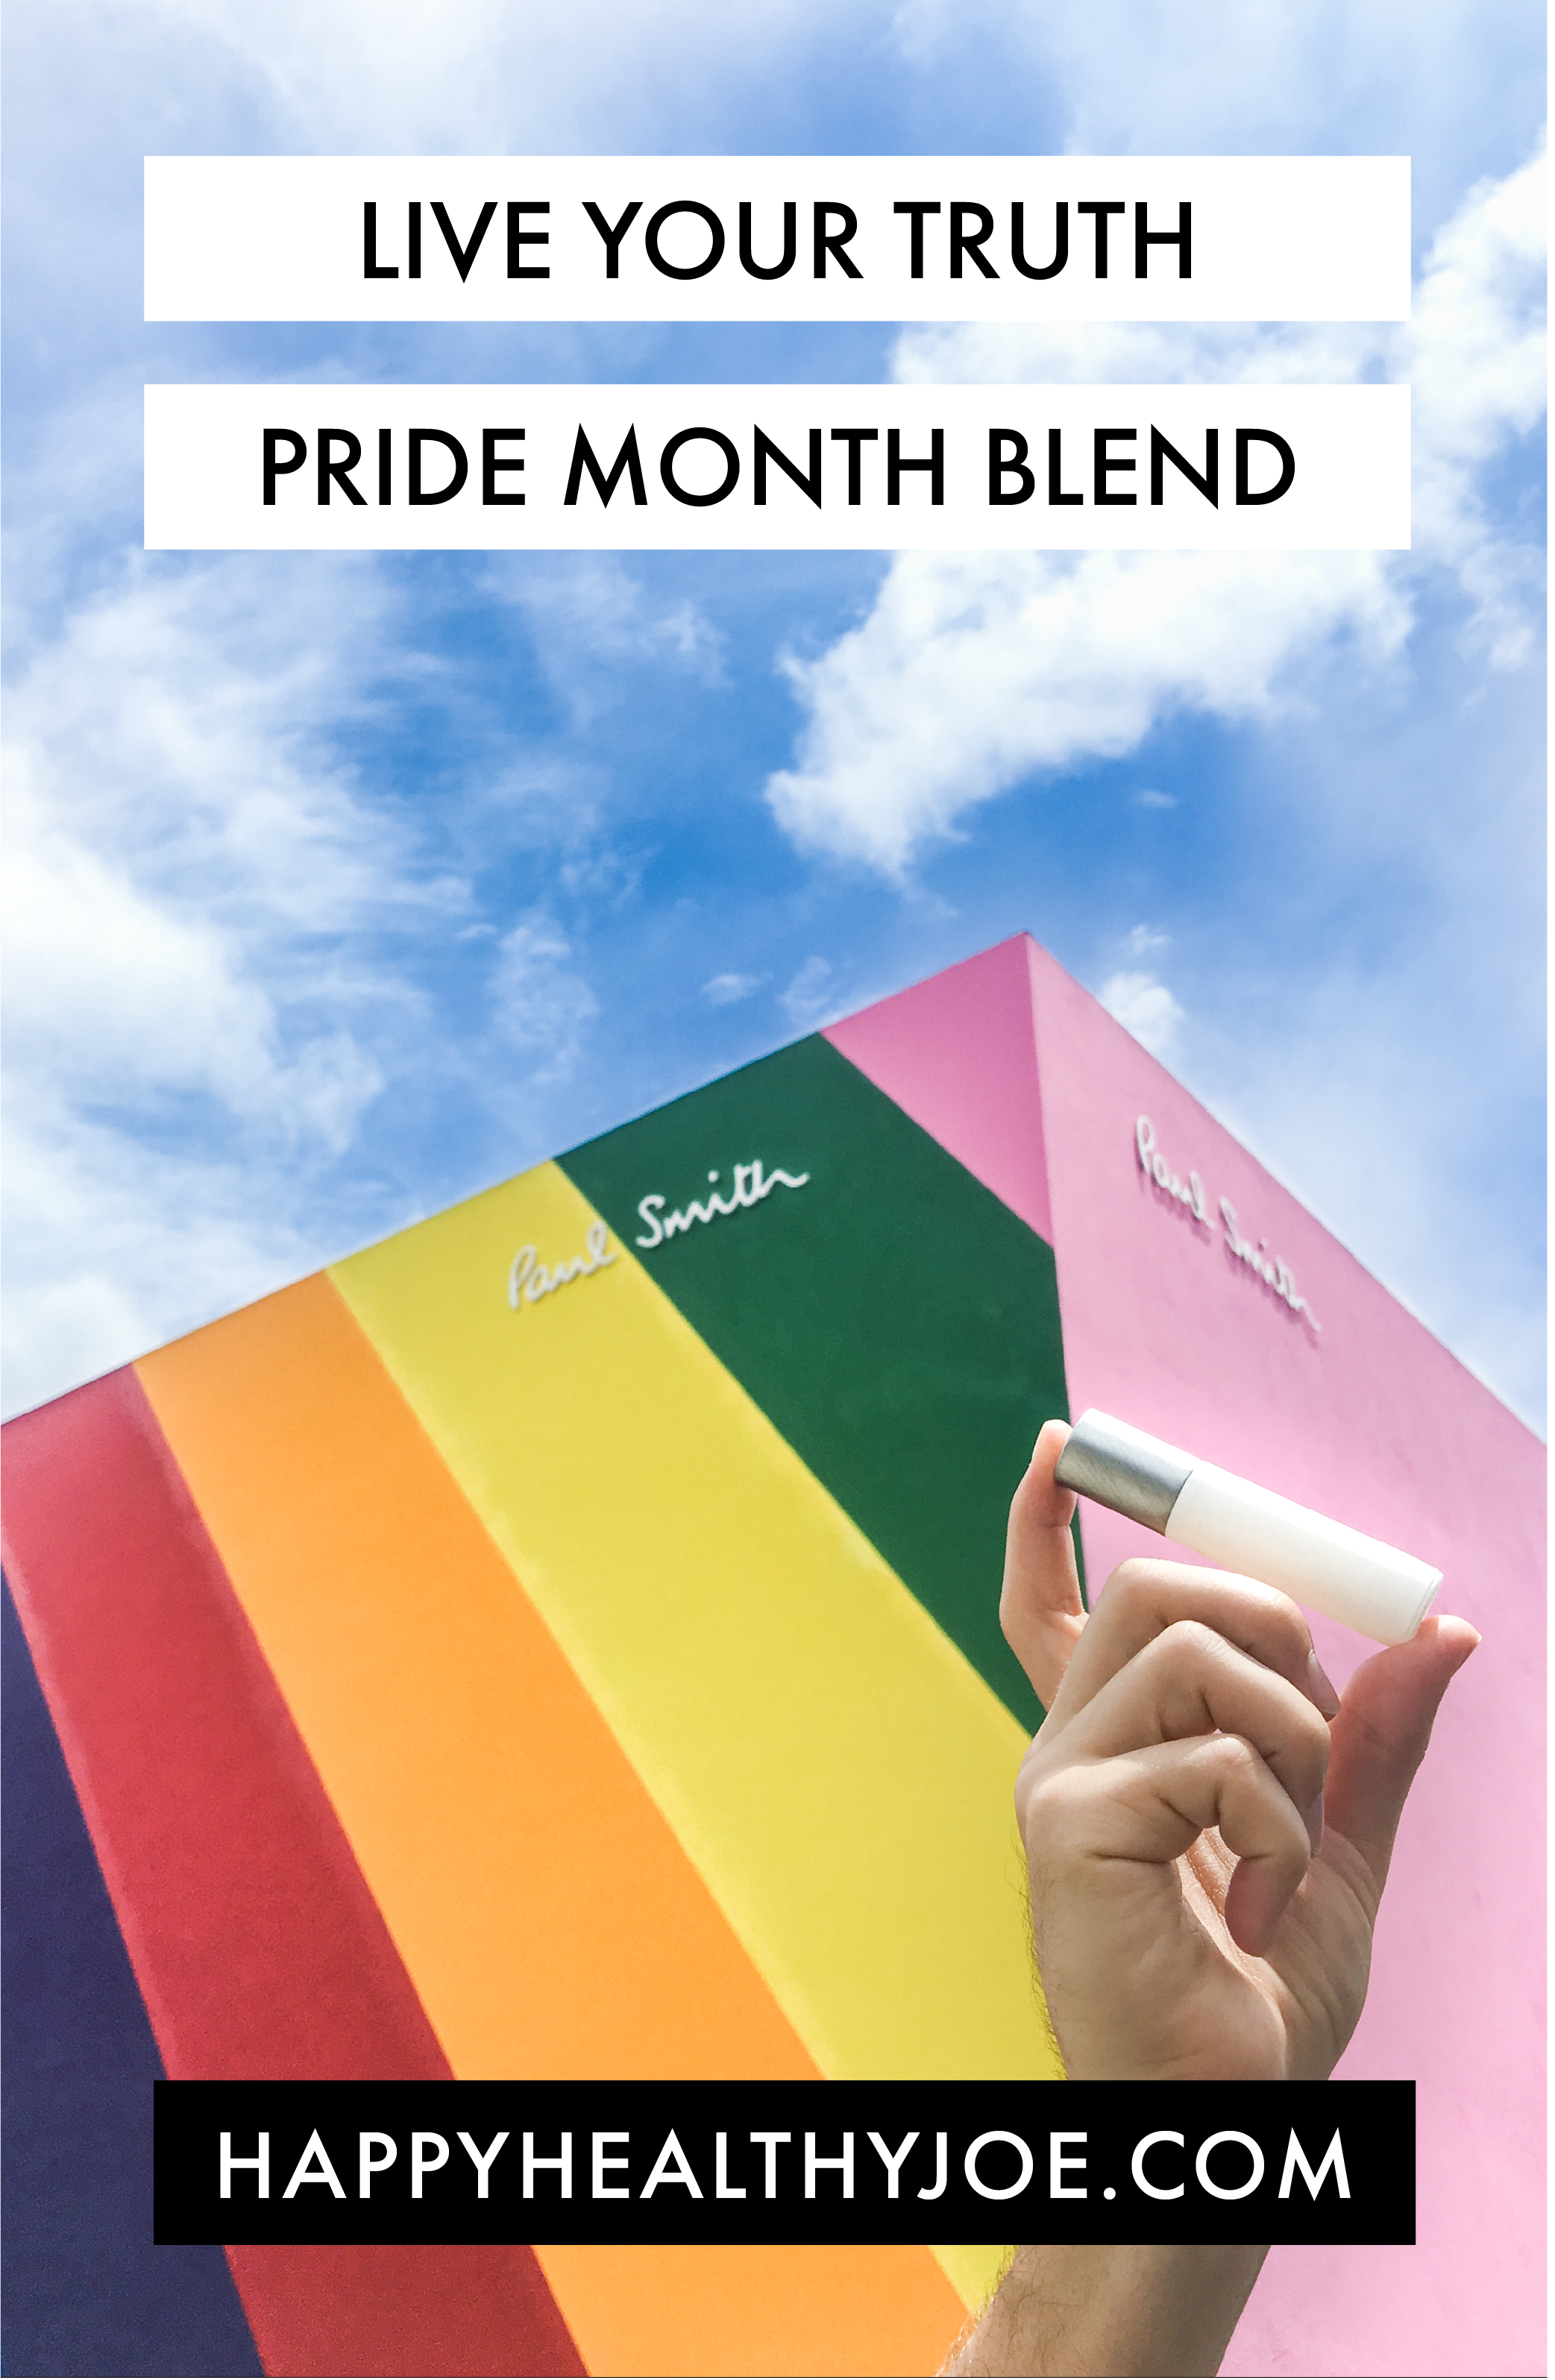 Live Your Truth doTERRA Essential Oil Blend to Celebrate Gay Pride Month | Happy Healthy Joe | Joe Struhs, INHC